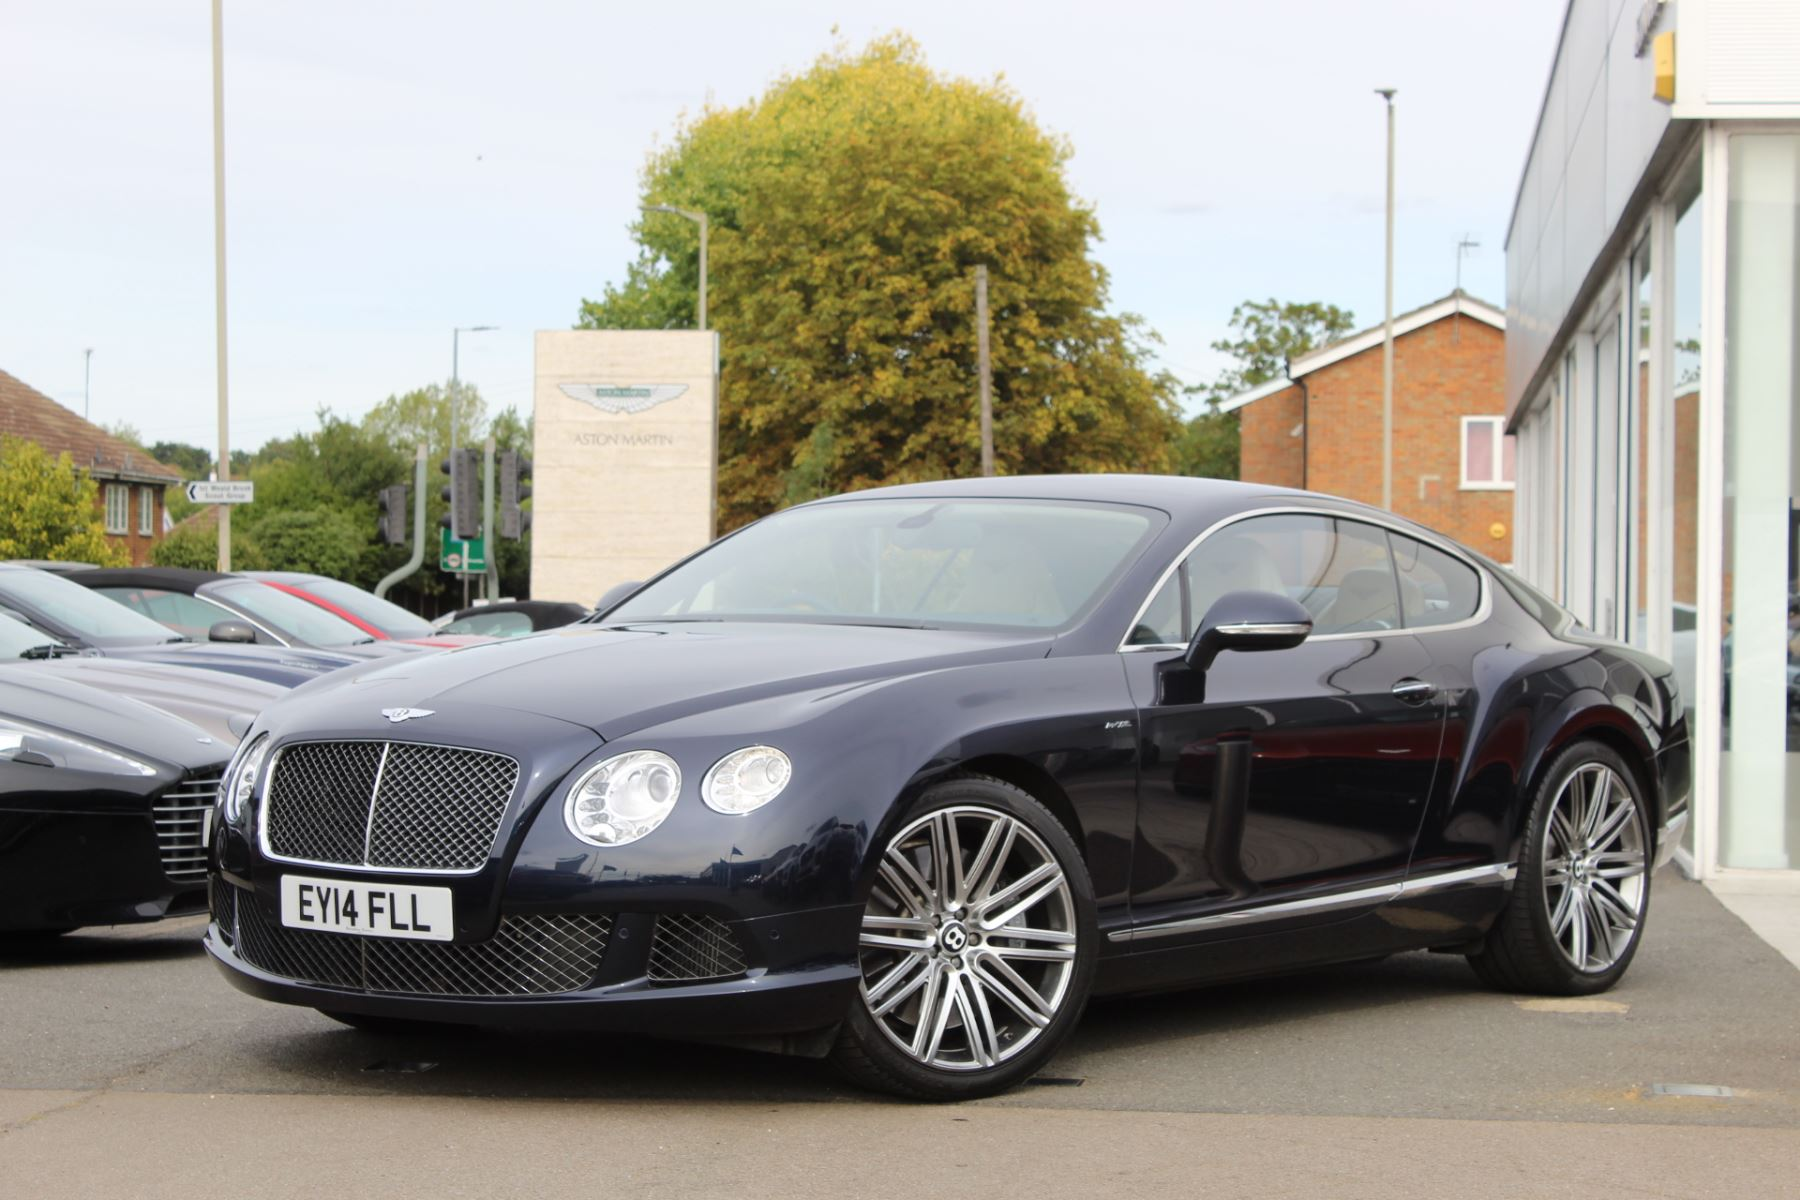 Bentley Continental GT 6.0 W12 Speed 2dr Automatic 3 door Coupe (2014) image